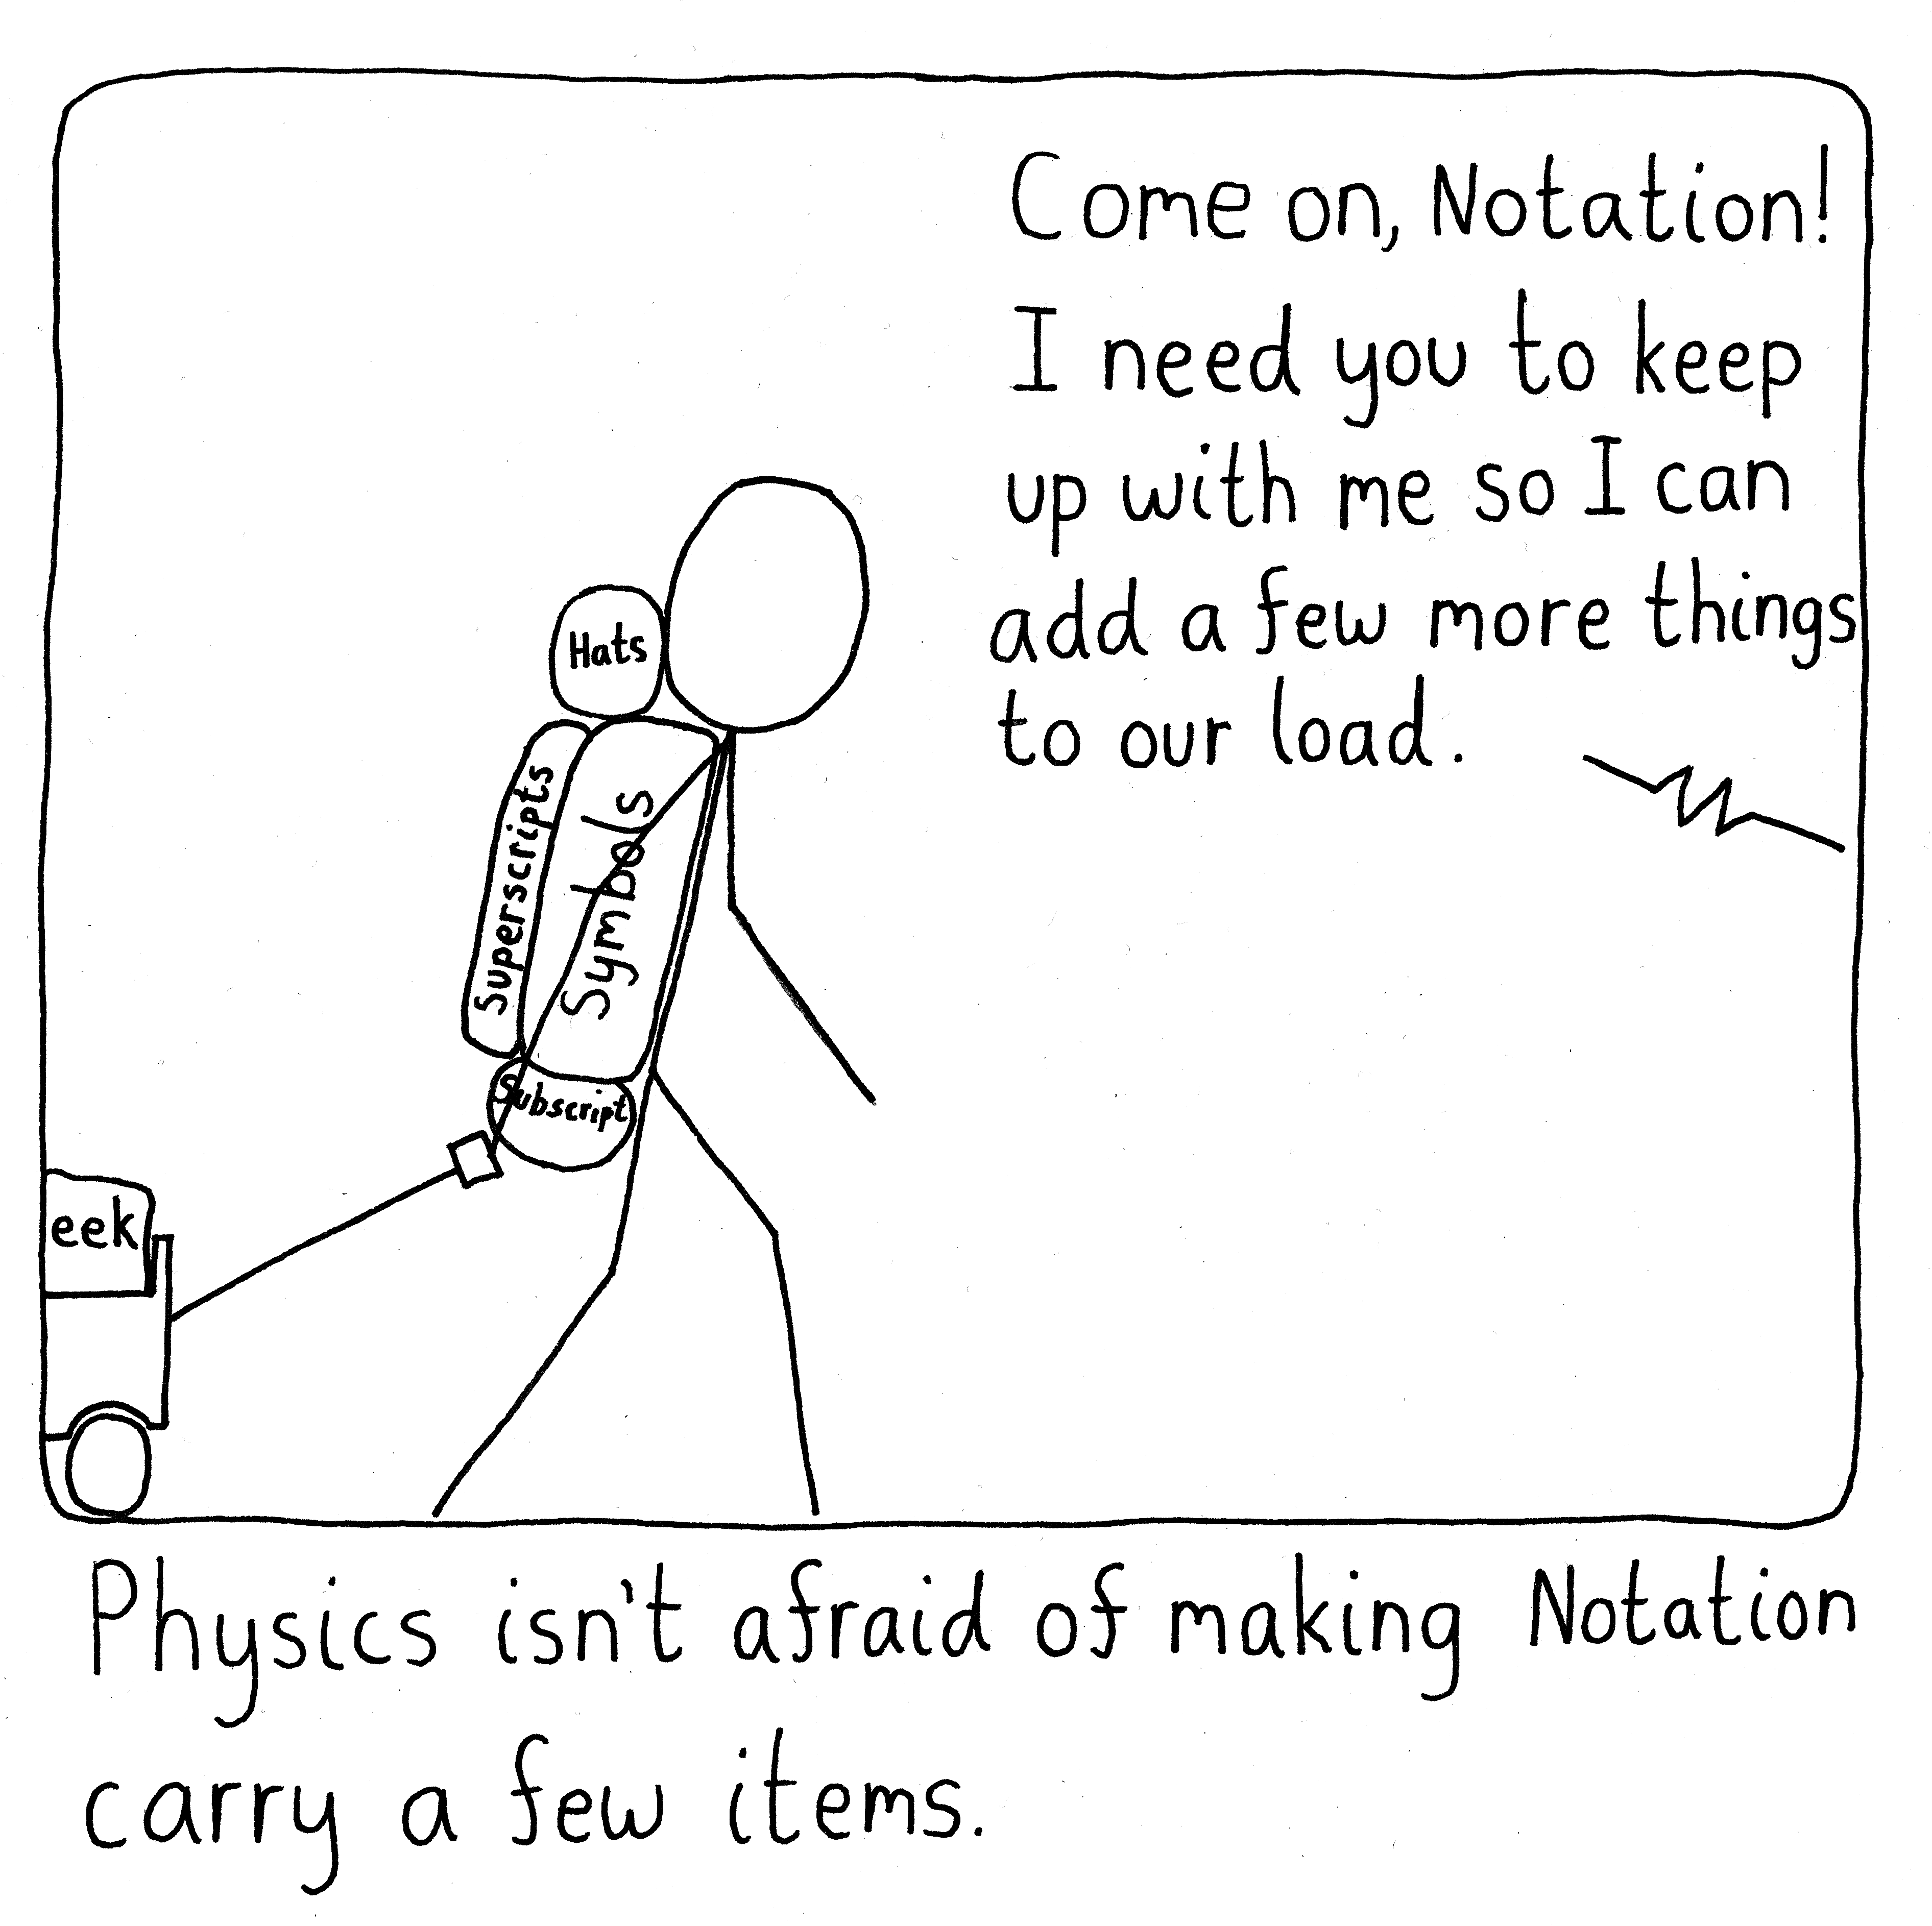 Physics creates quite the burden for Notation to carry.